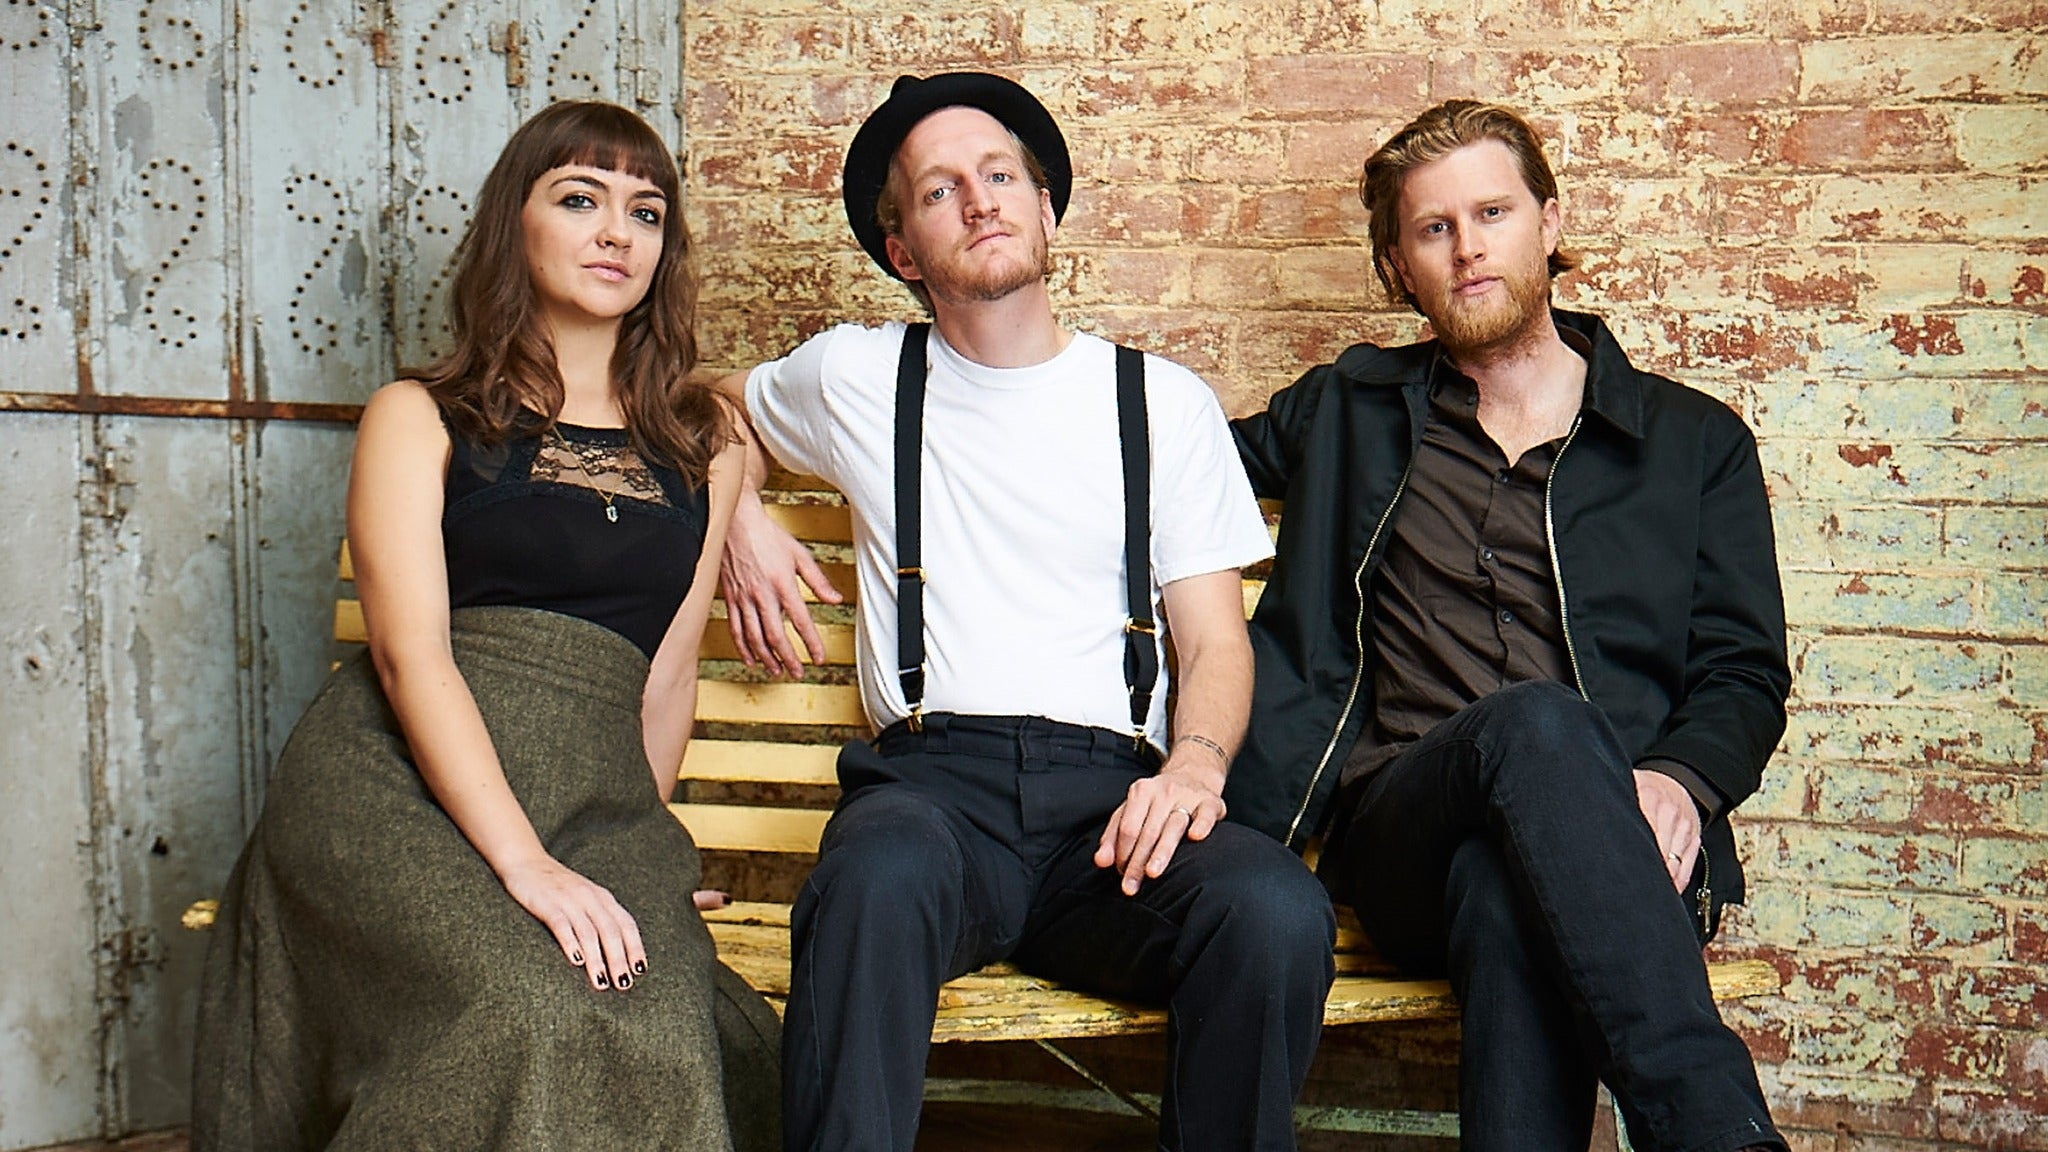 The Lumineers 'Cleopatra World Tour Continues' 2017 - Rosemont, IL 60018